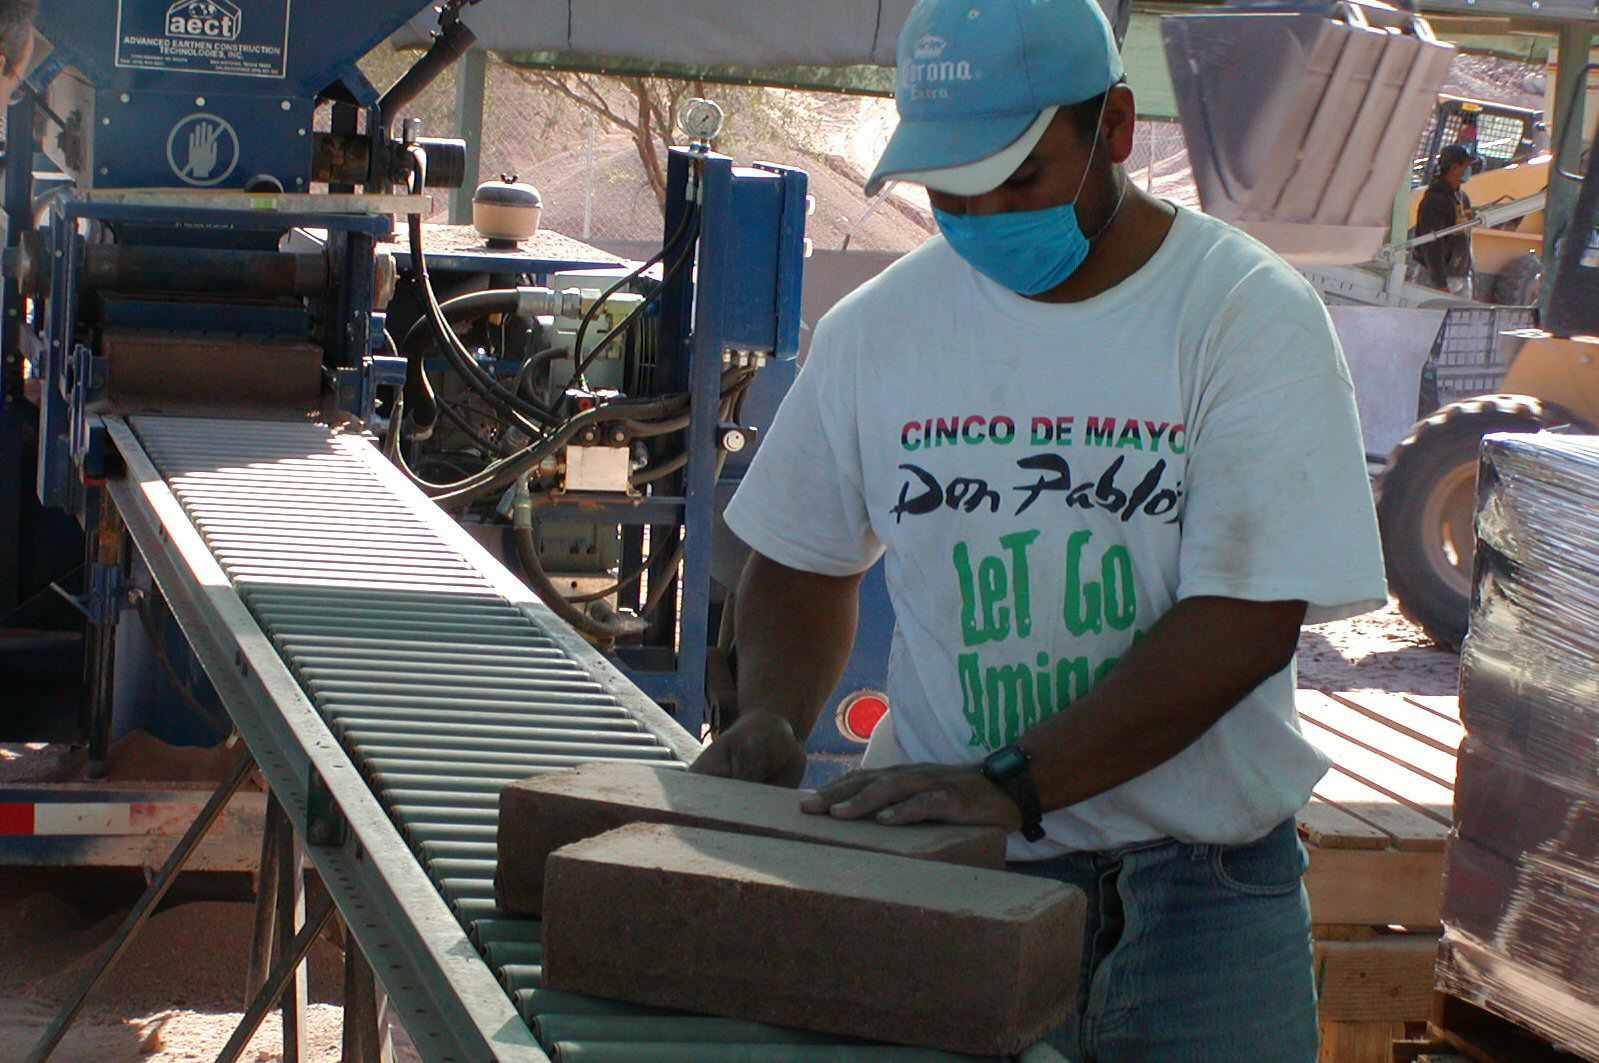 man in t-shirt, cap, and surgical mask examines earth block on a conveyor roller